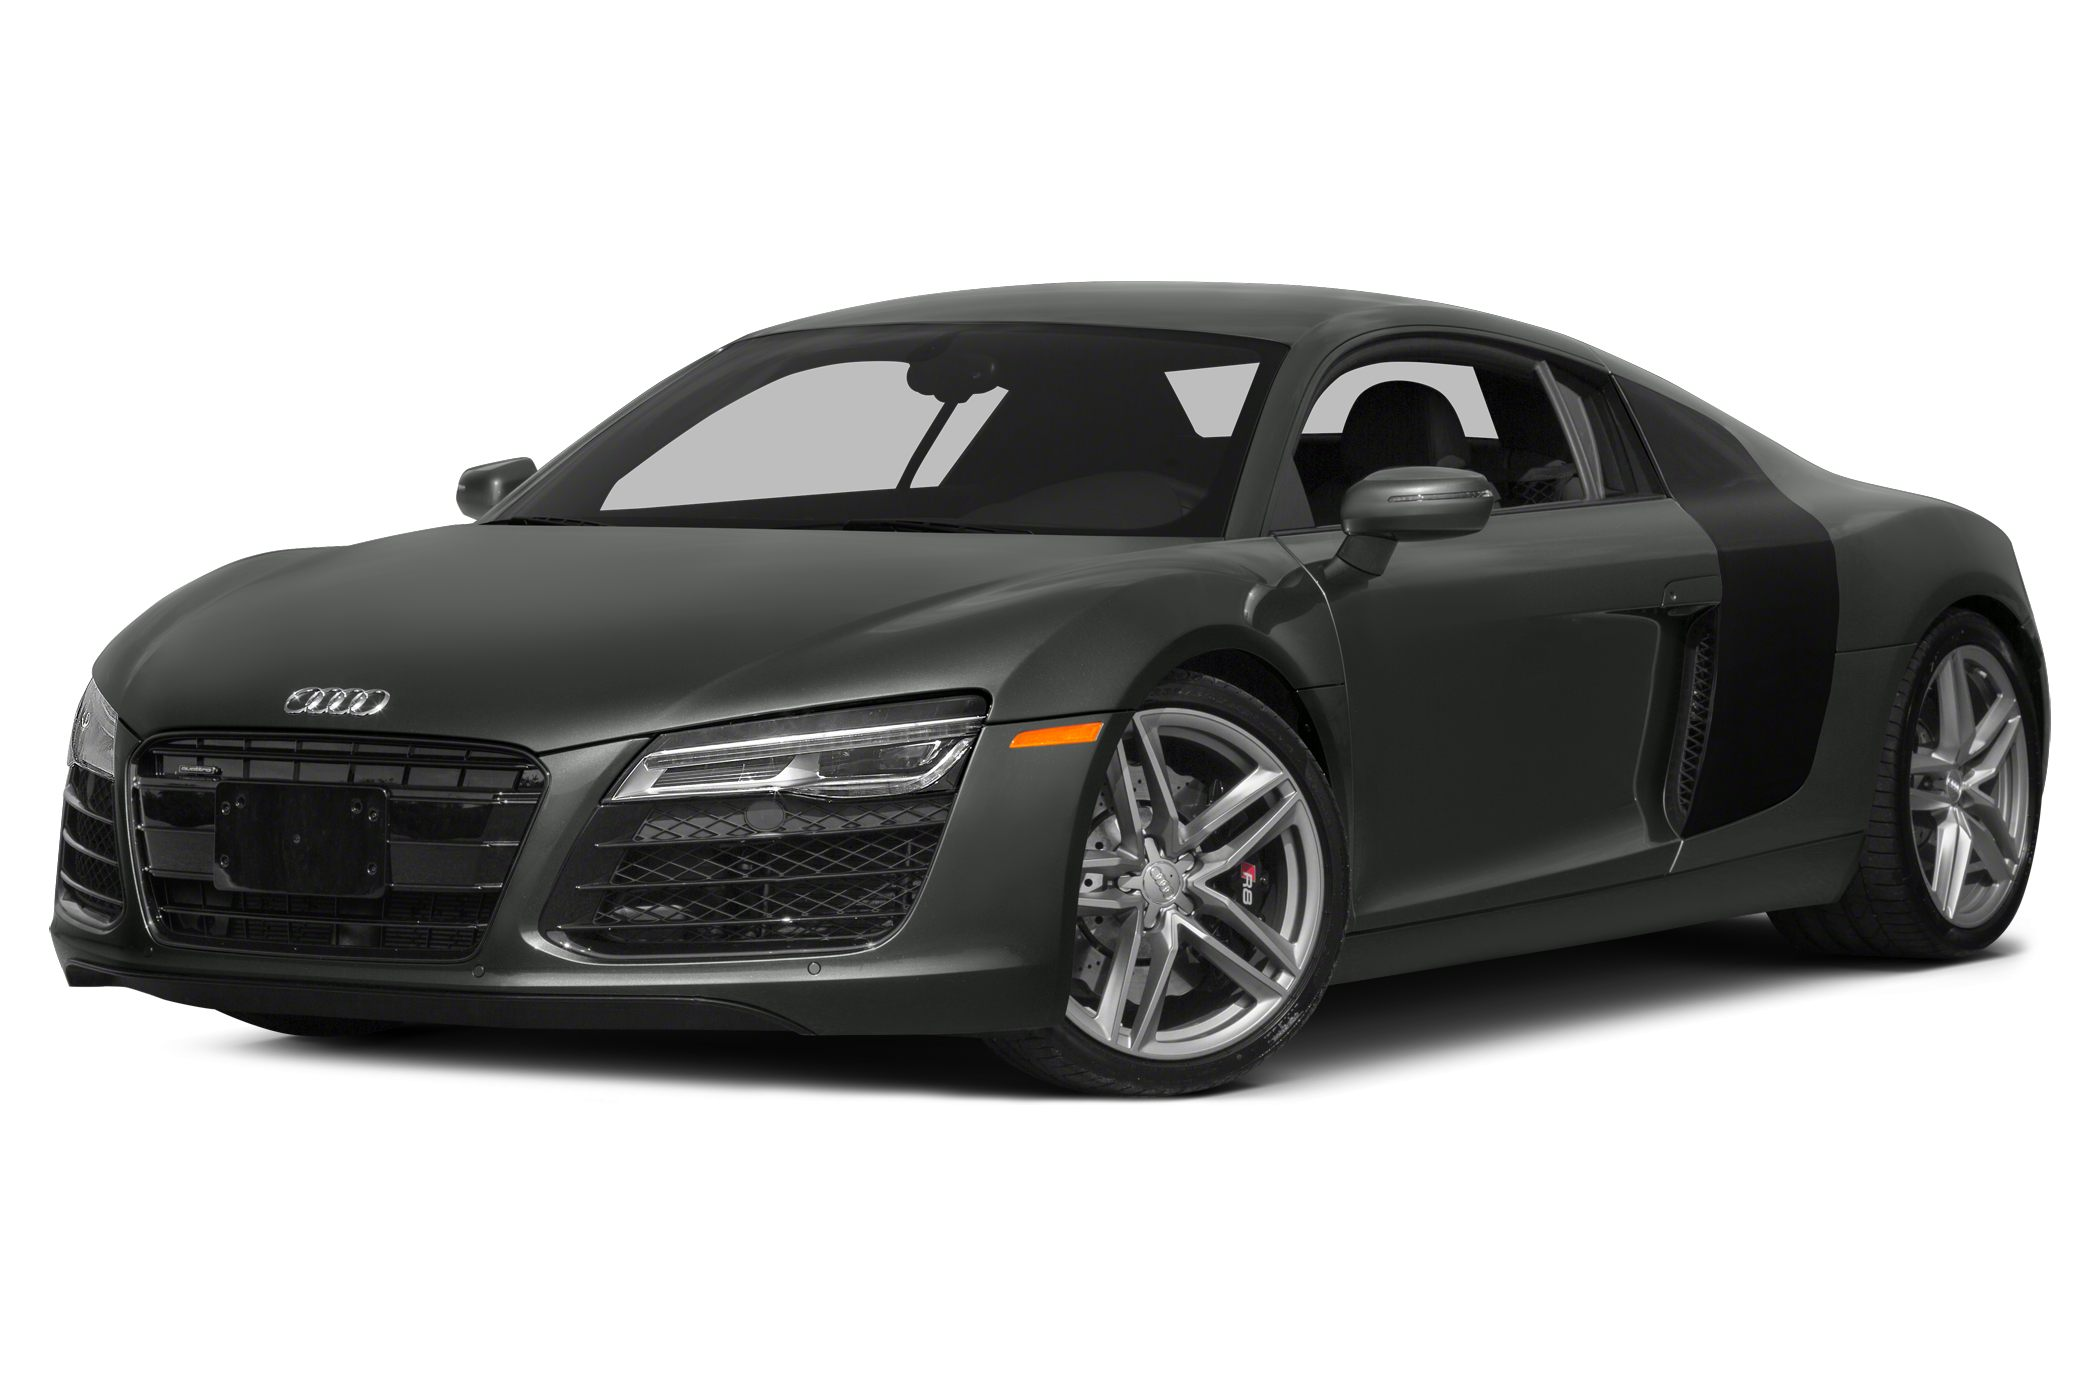 Audi R8 Monthly Payment >> Audi R8 Overview & Generations - CarsDirect